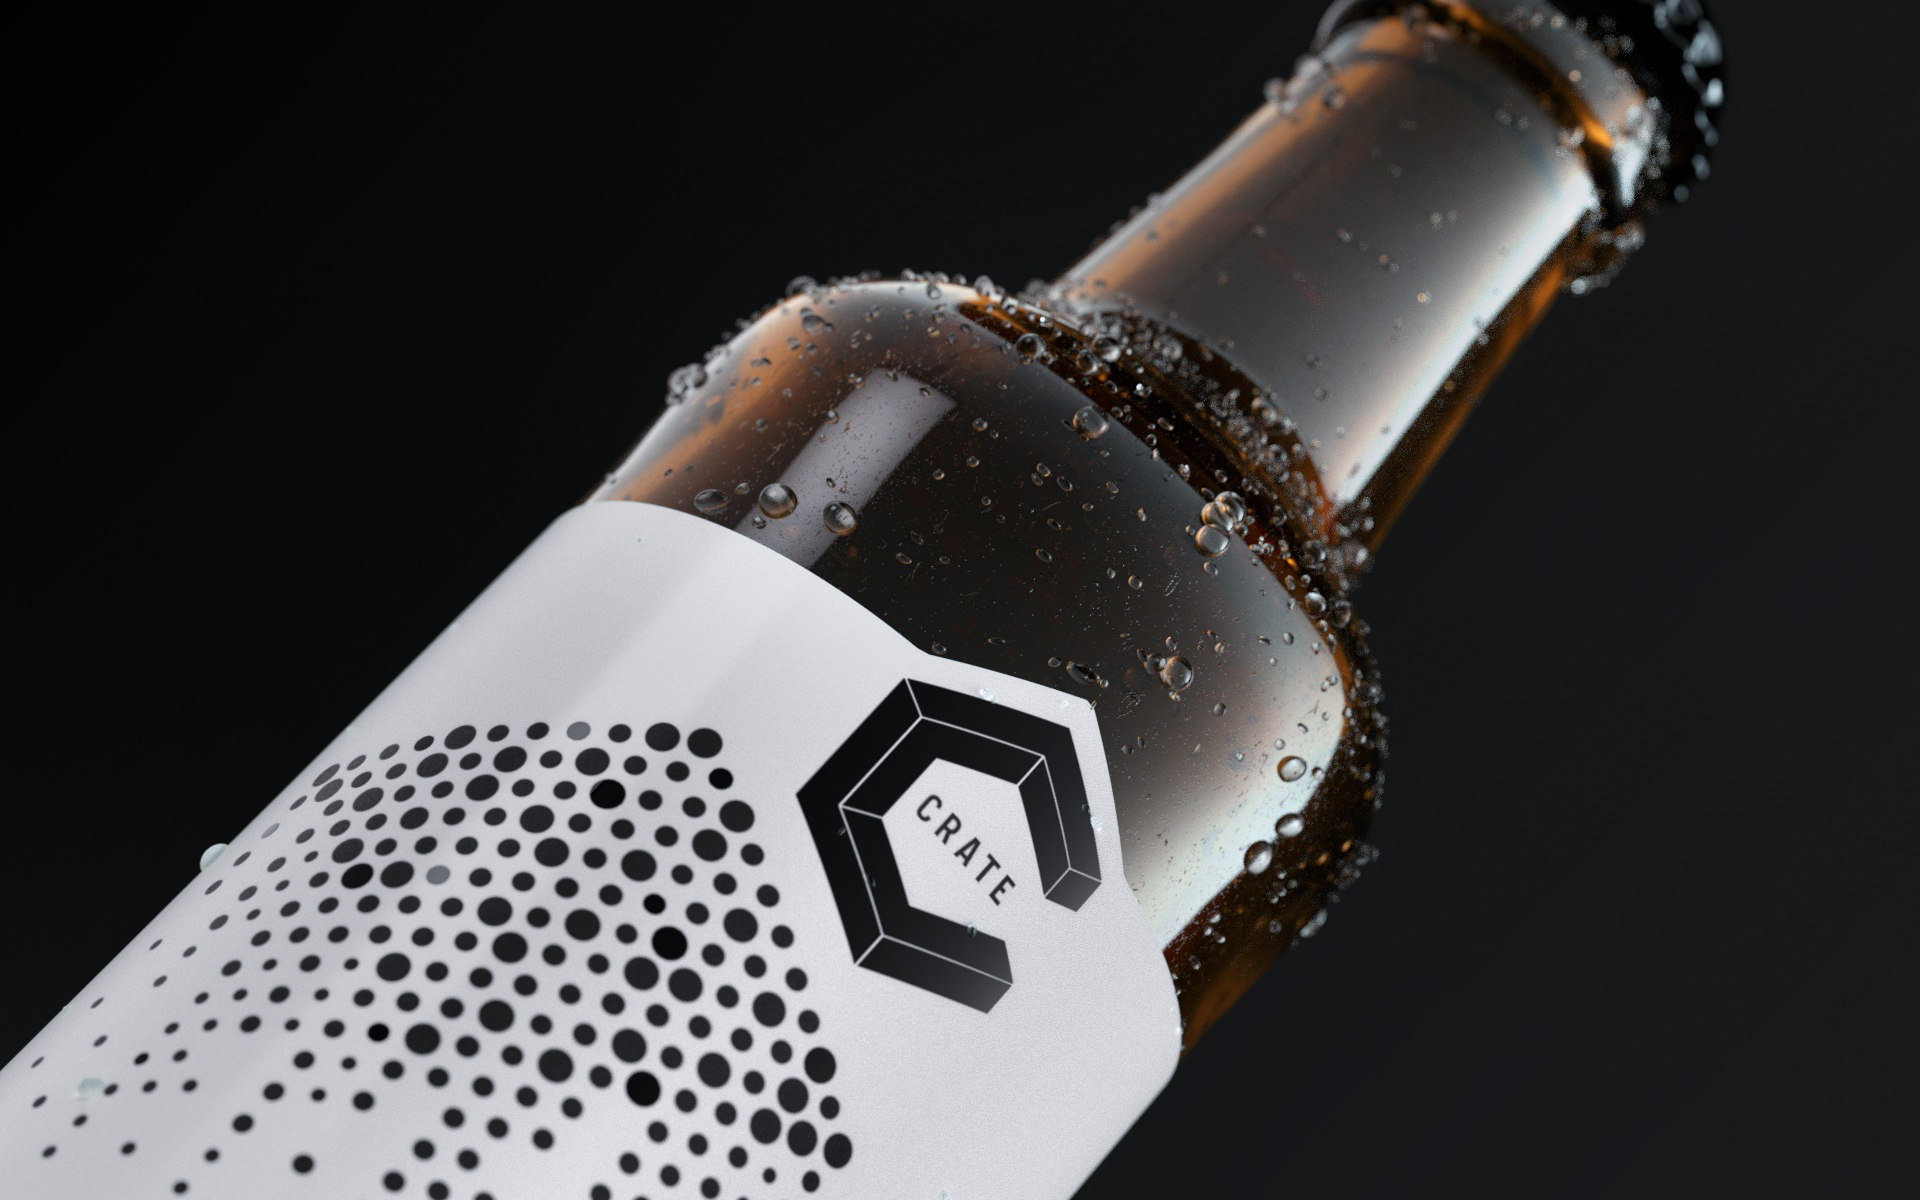 craft-beer-bottle-3d-render-closeup-01